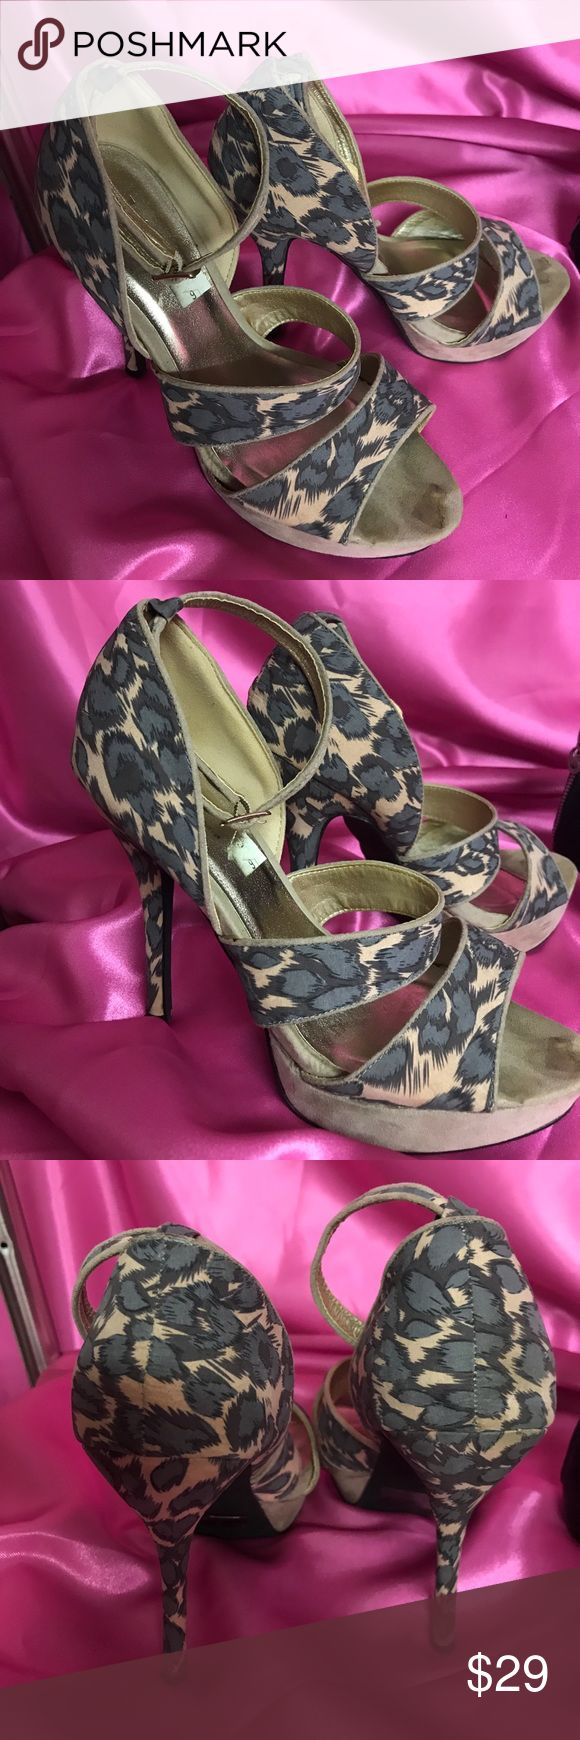 Shi leopard cheetah platform gray tan nude heels 9 Strappy heels pumps Platforms size 9 criss cross worn once .. sticker residue on toe a few scuffs needs a tiny bit of TLC gray with nude back ground animal print shi Shoes Platforms